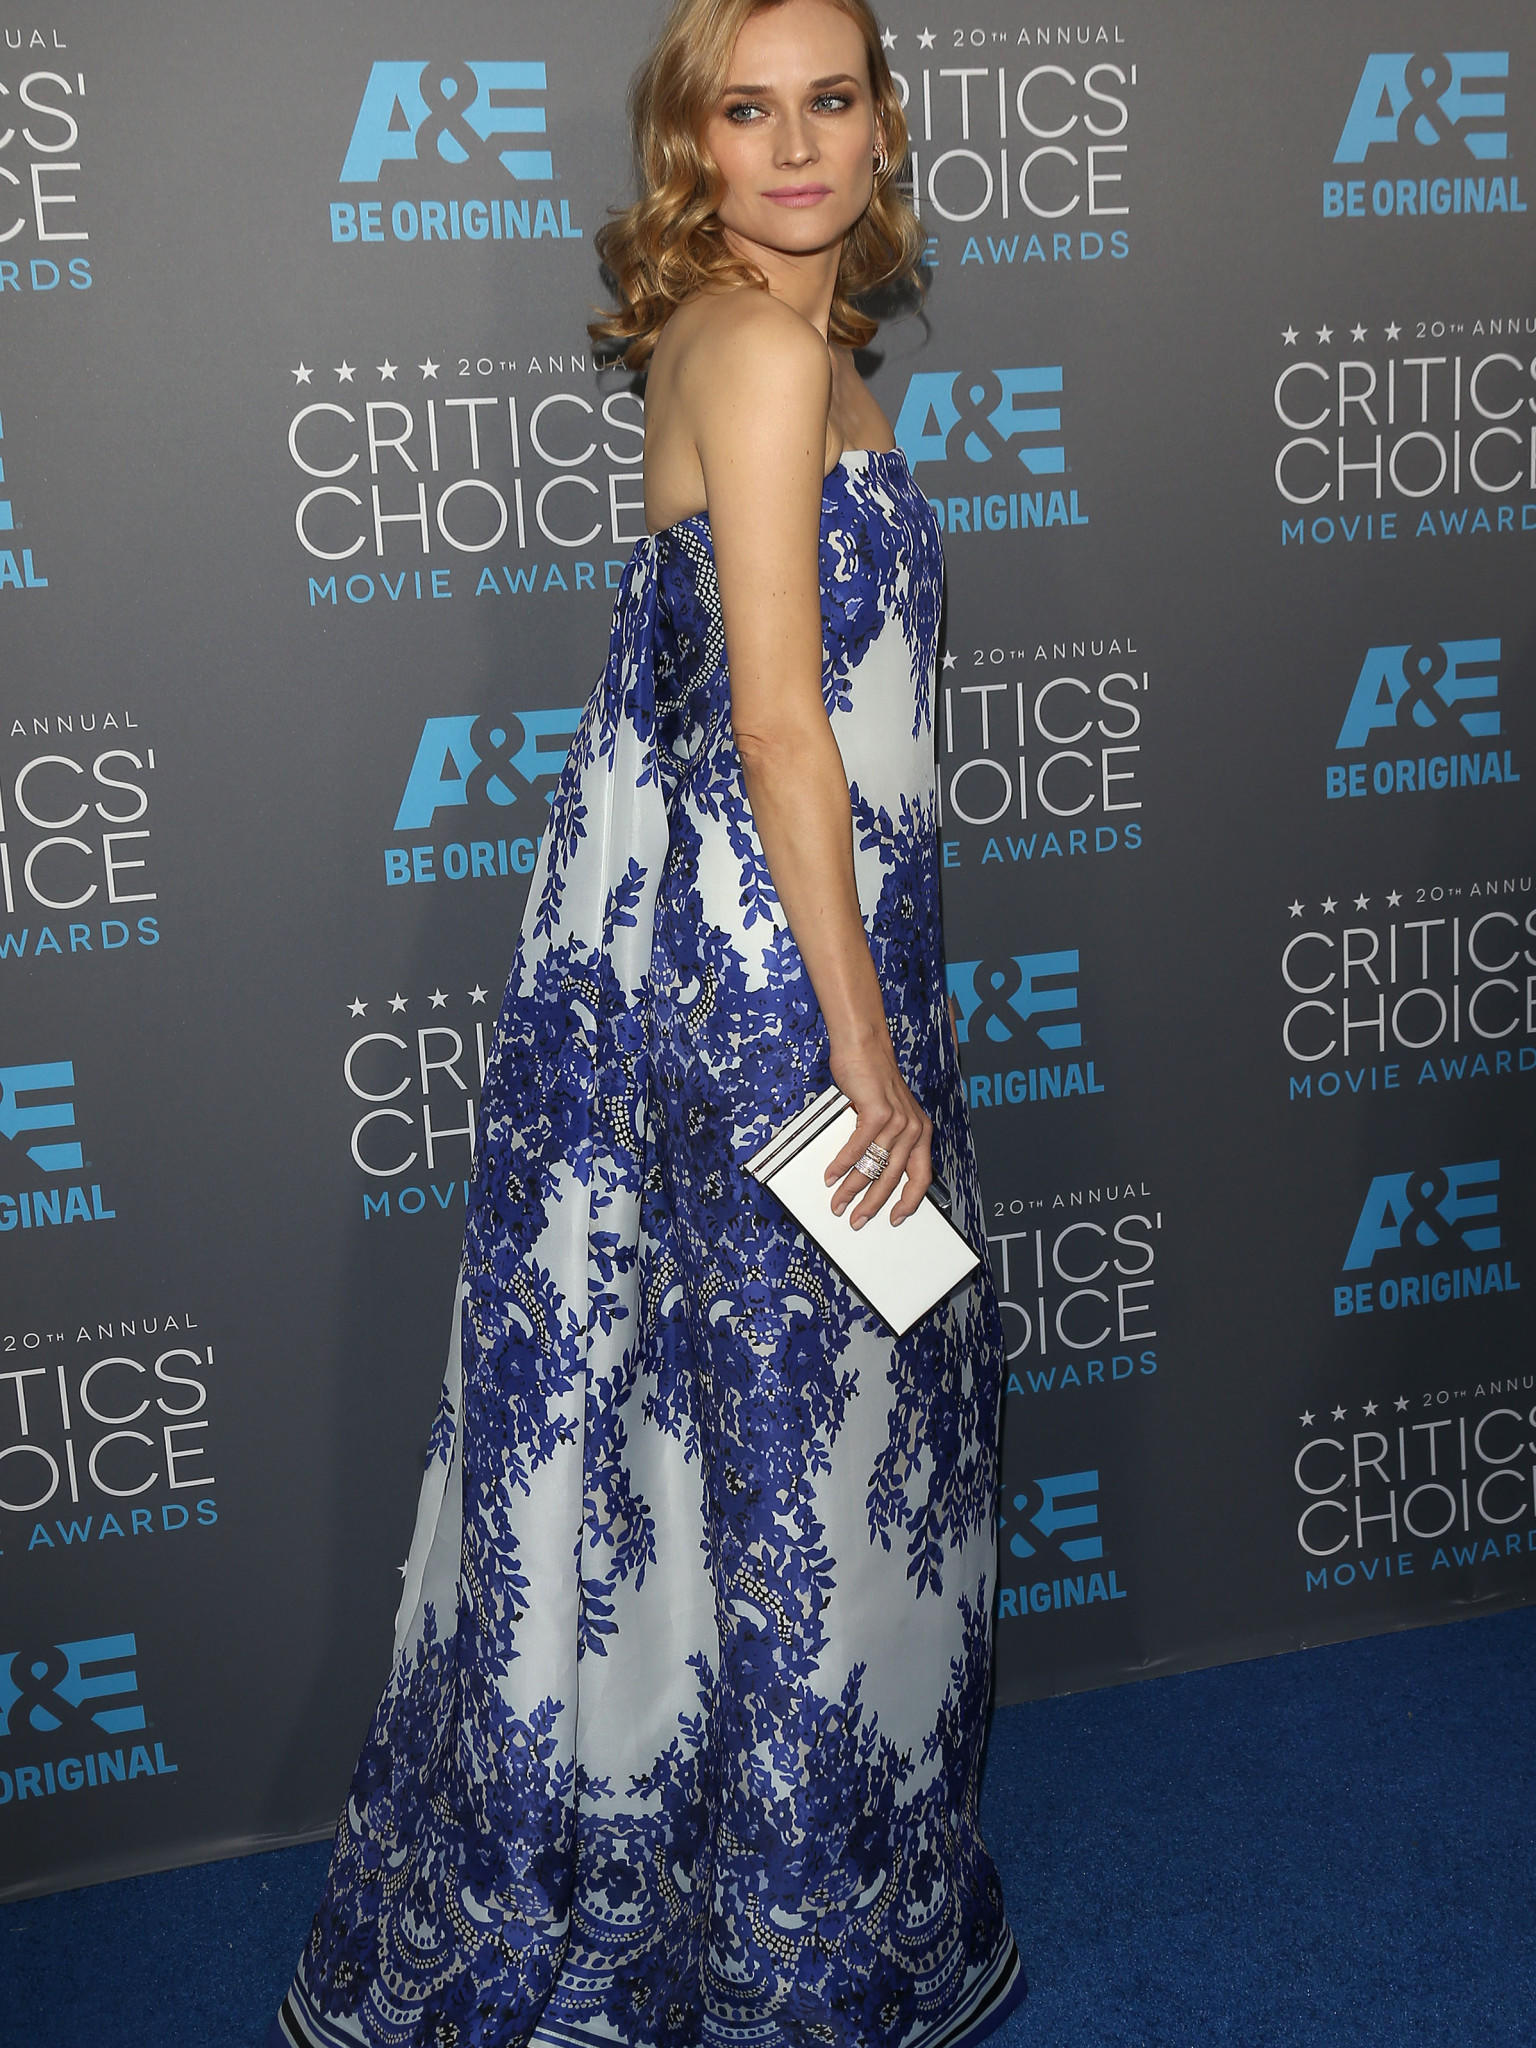 2015 Critics Choice Awards